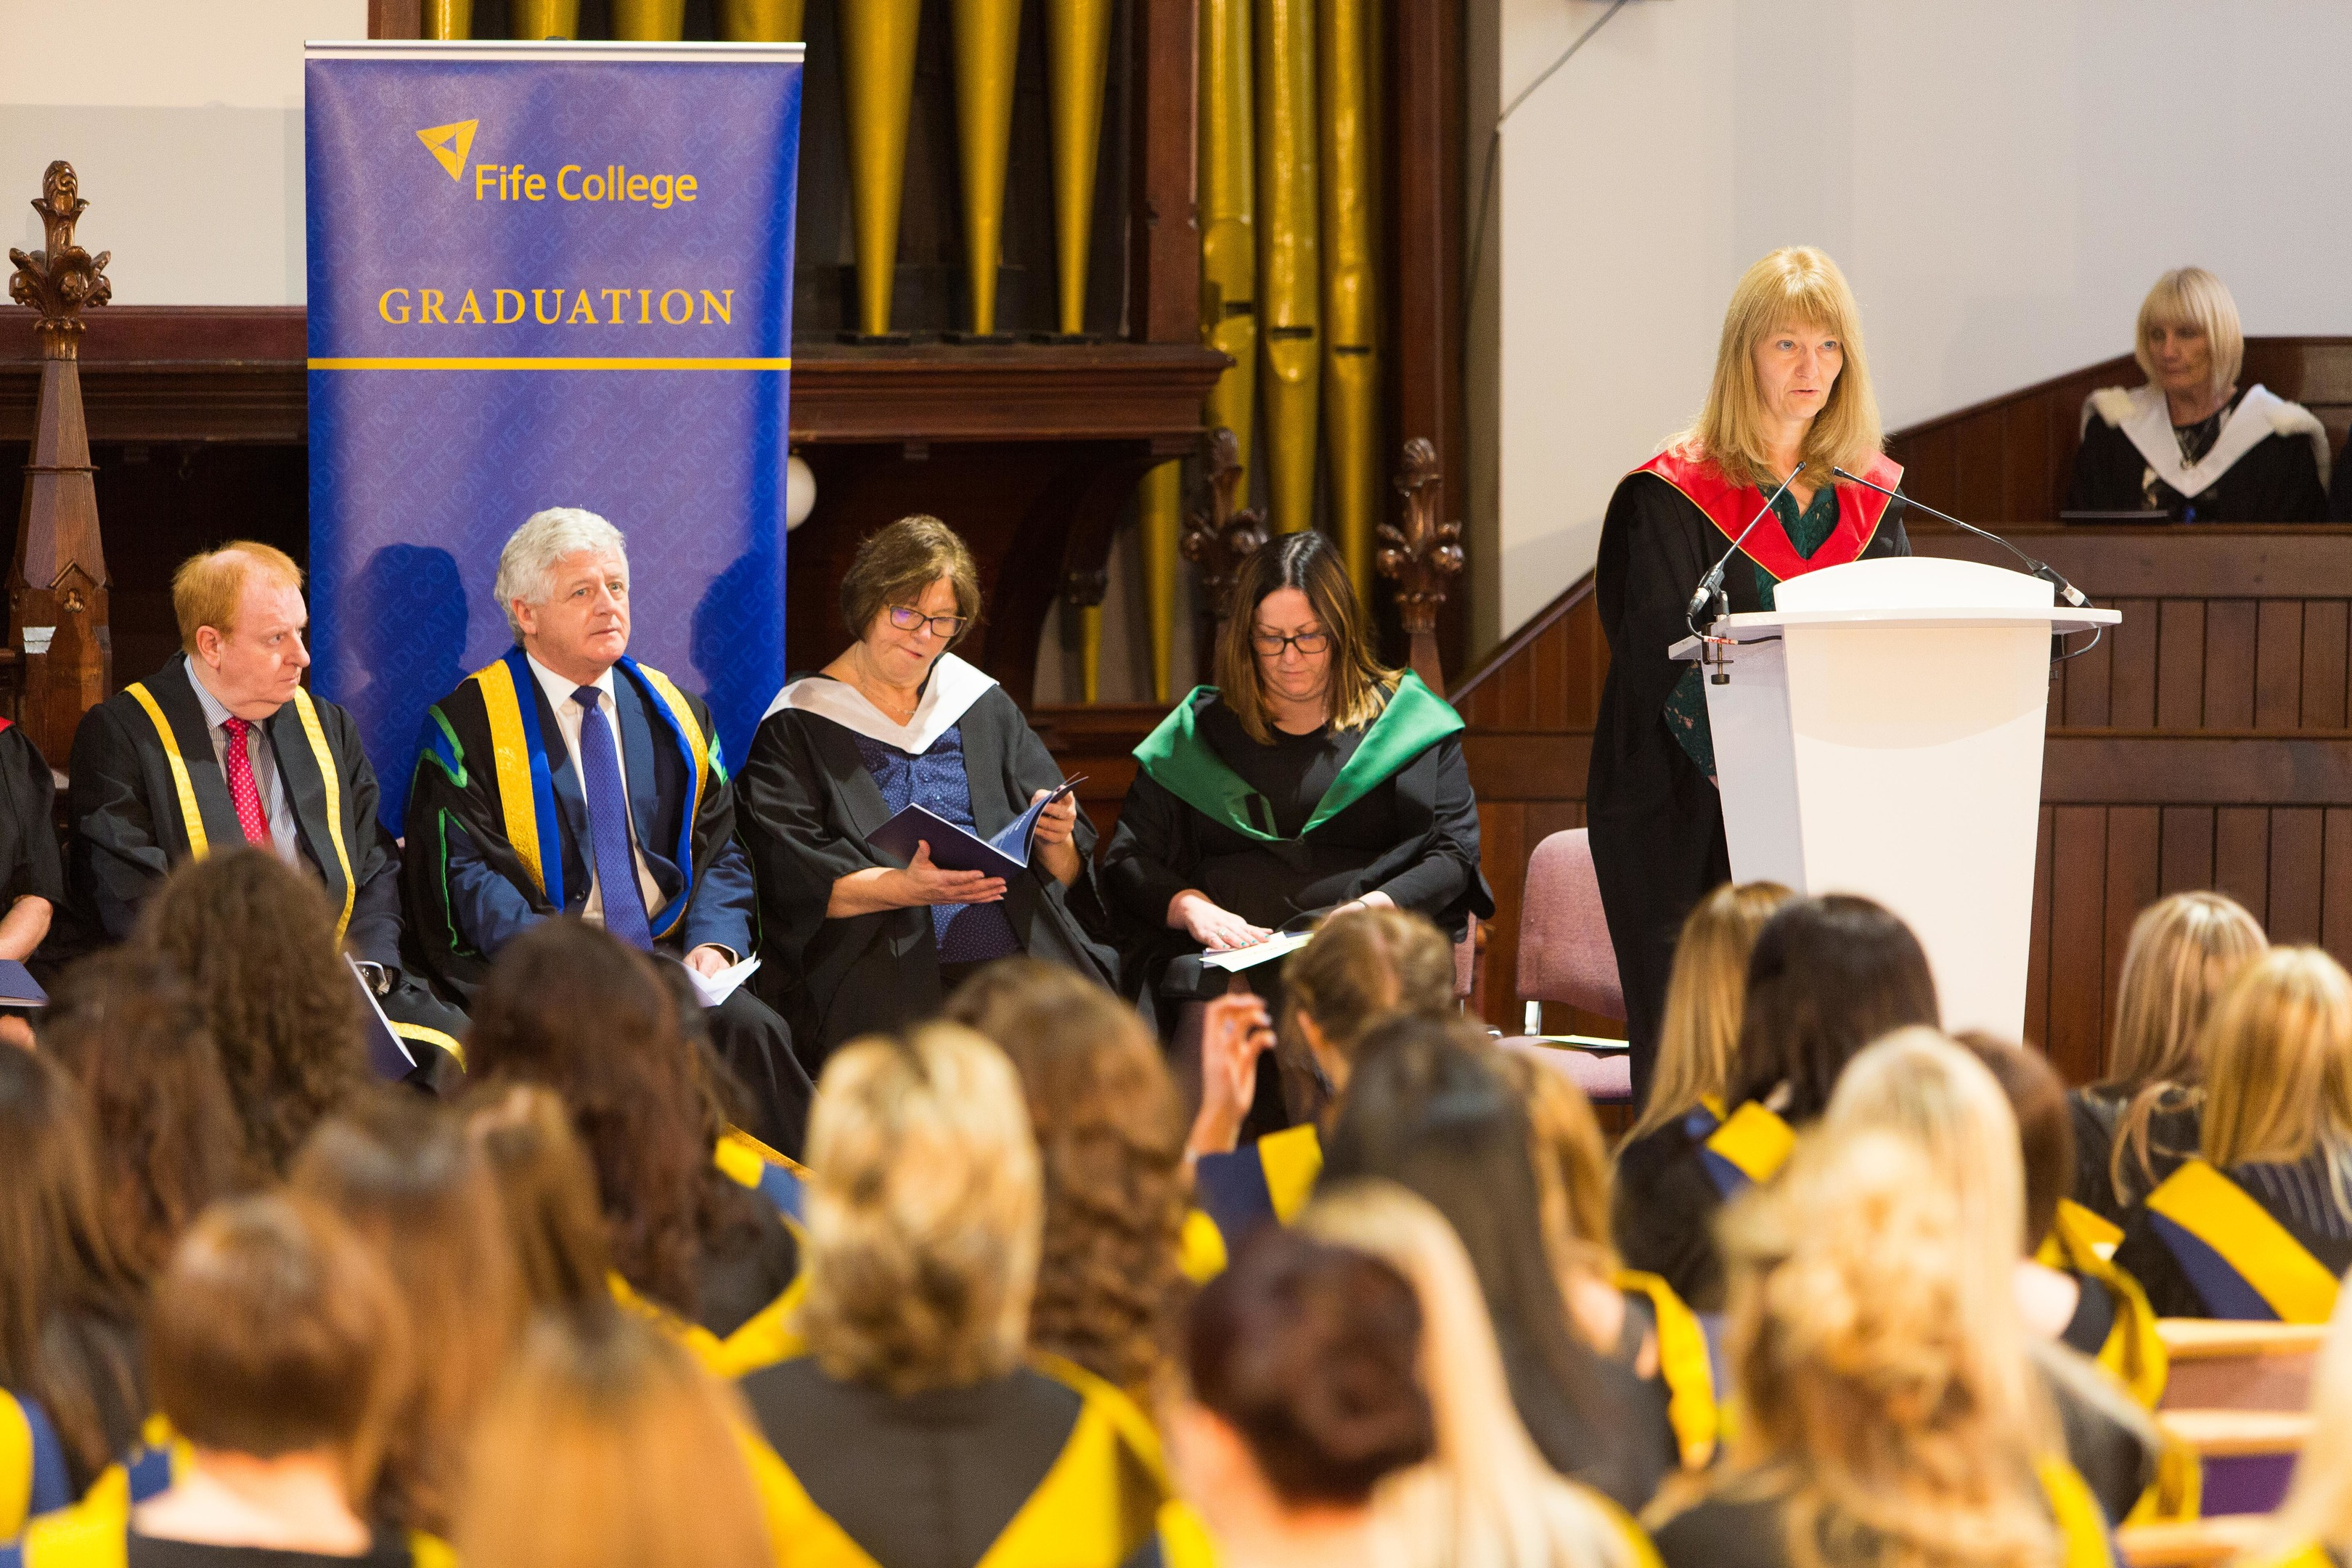 Dorothee Leslie addresses childcare and health students at a graduation at Fife College.